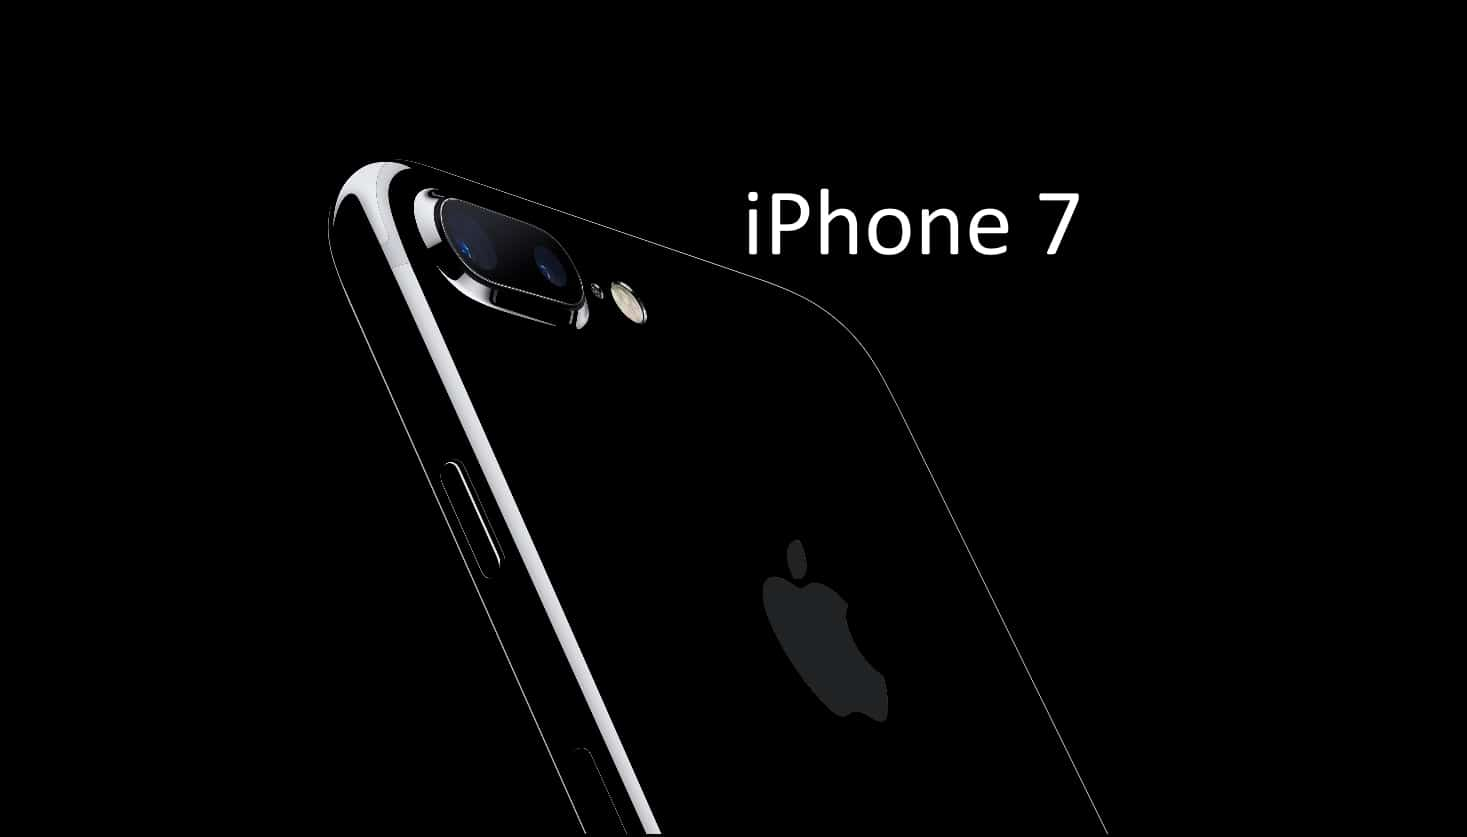 Apple a lansat iPhone 7 si 7 Plus, specificatii si preturi